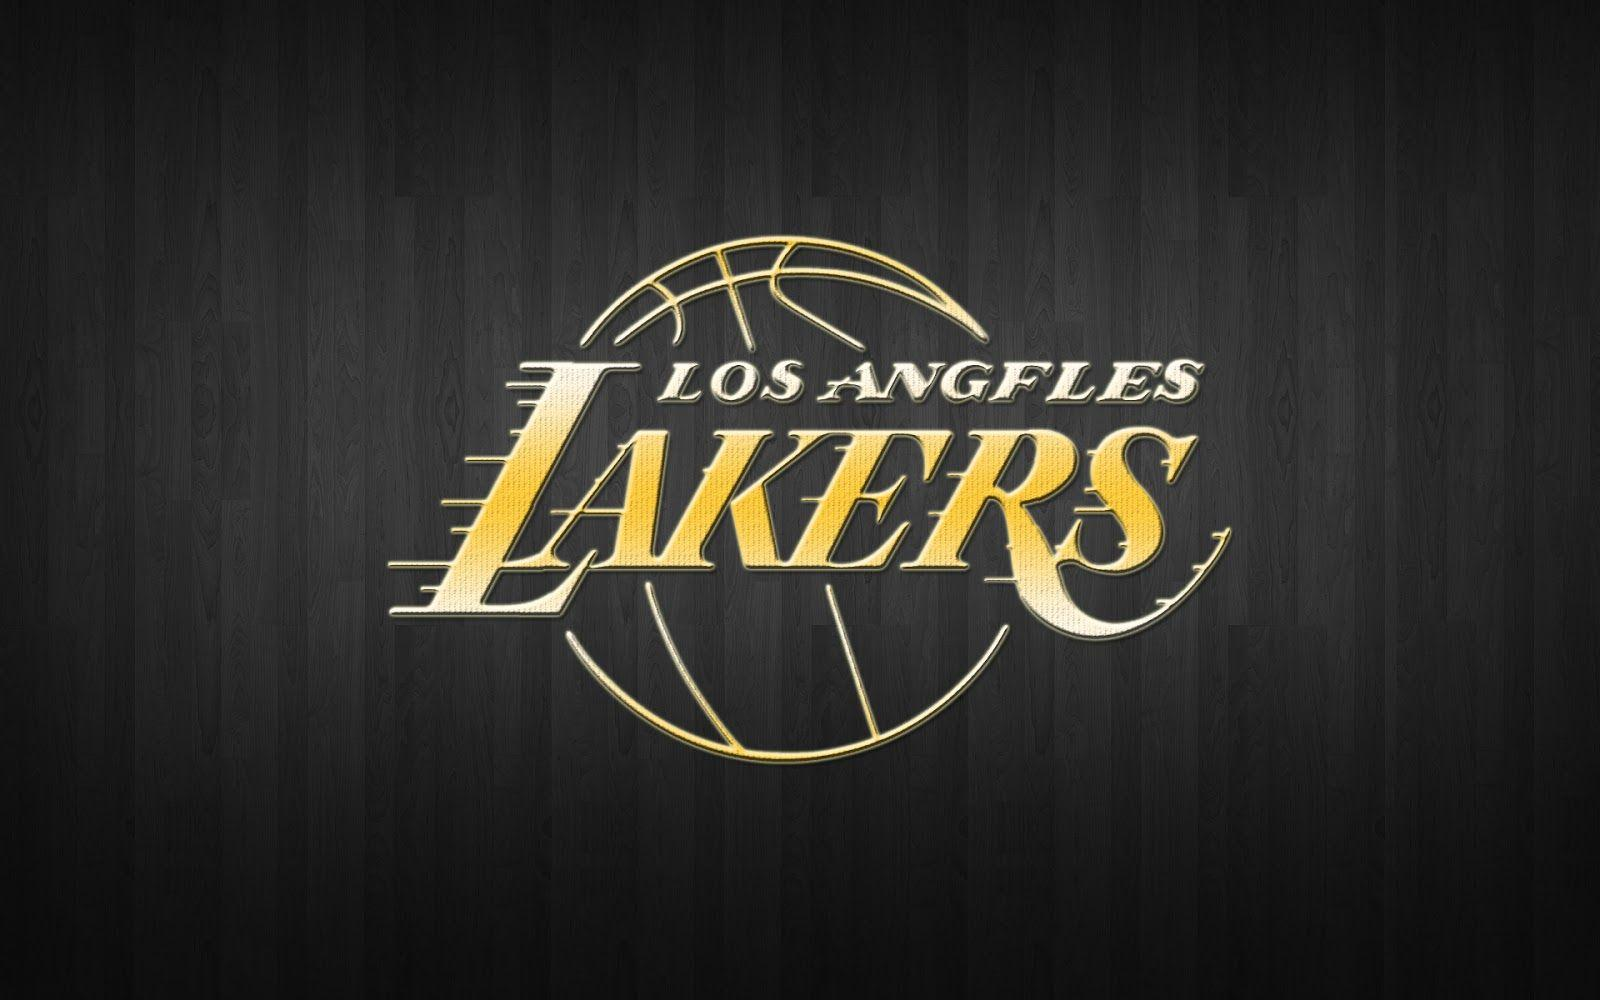 Lakers wallpaper: Adding To The Starting Five